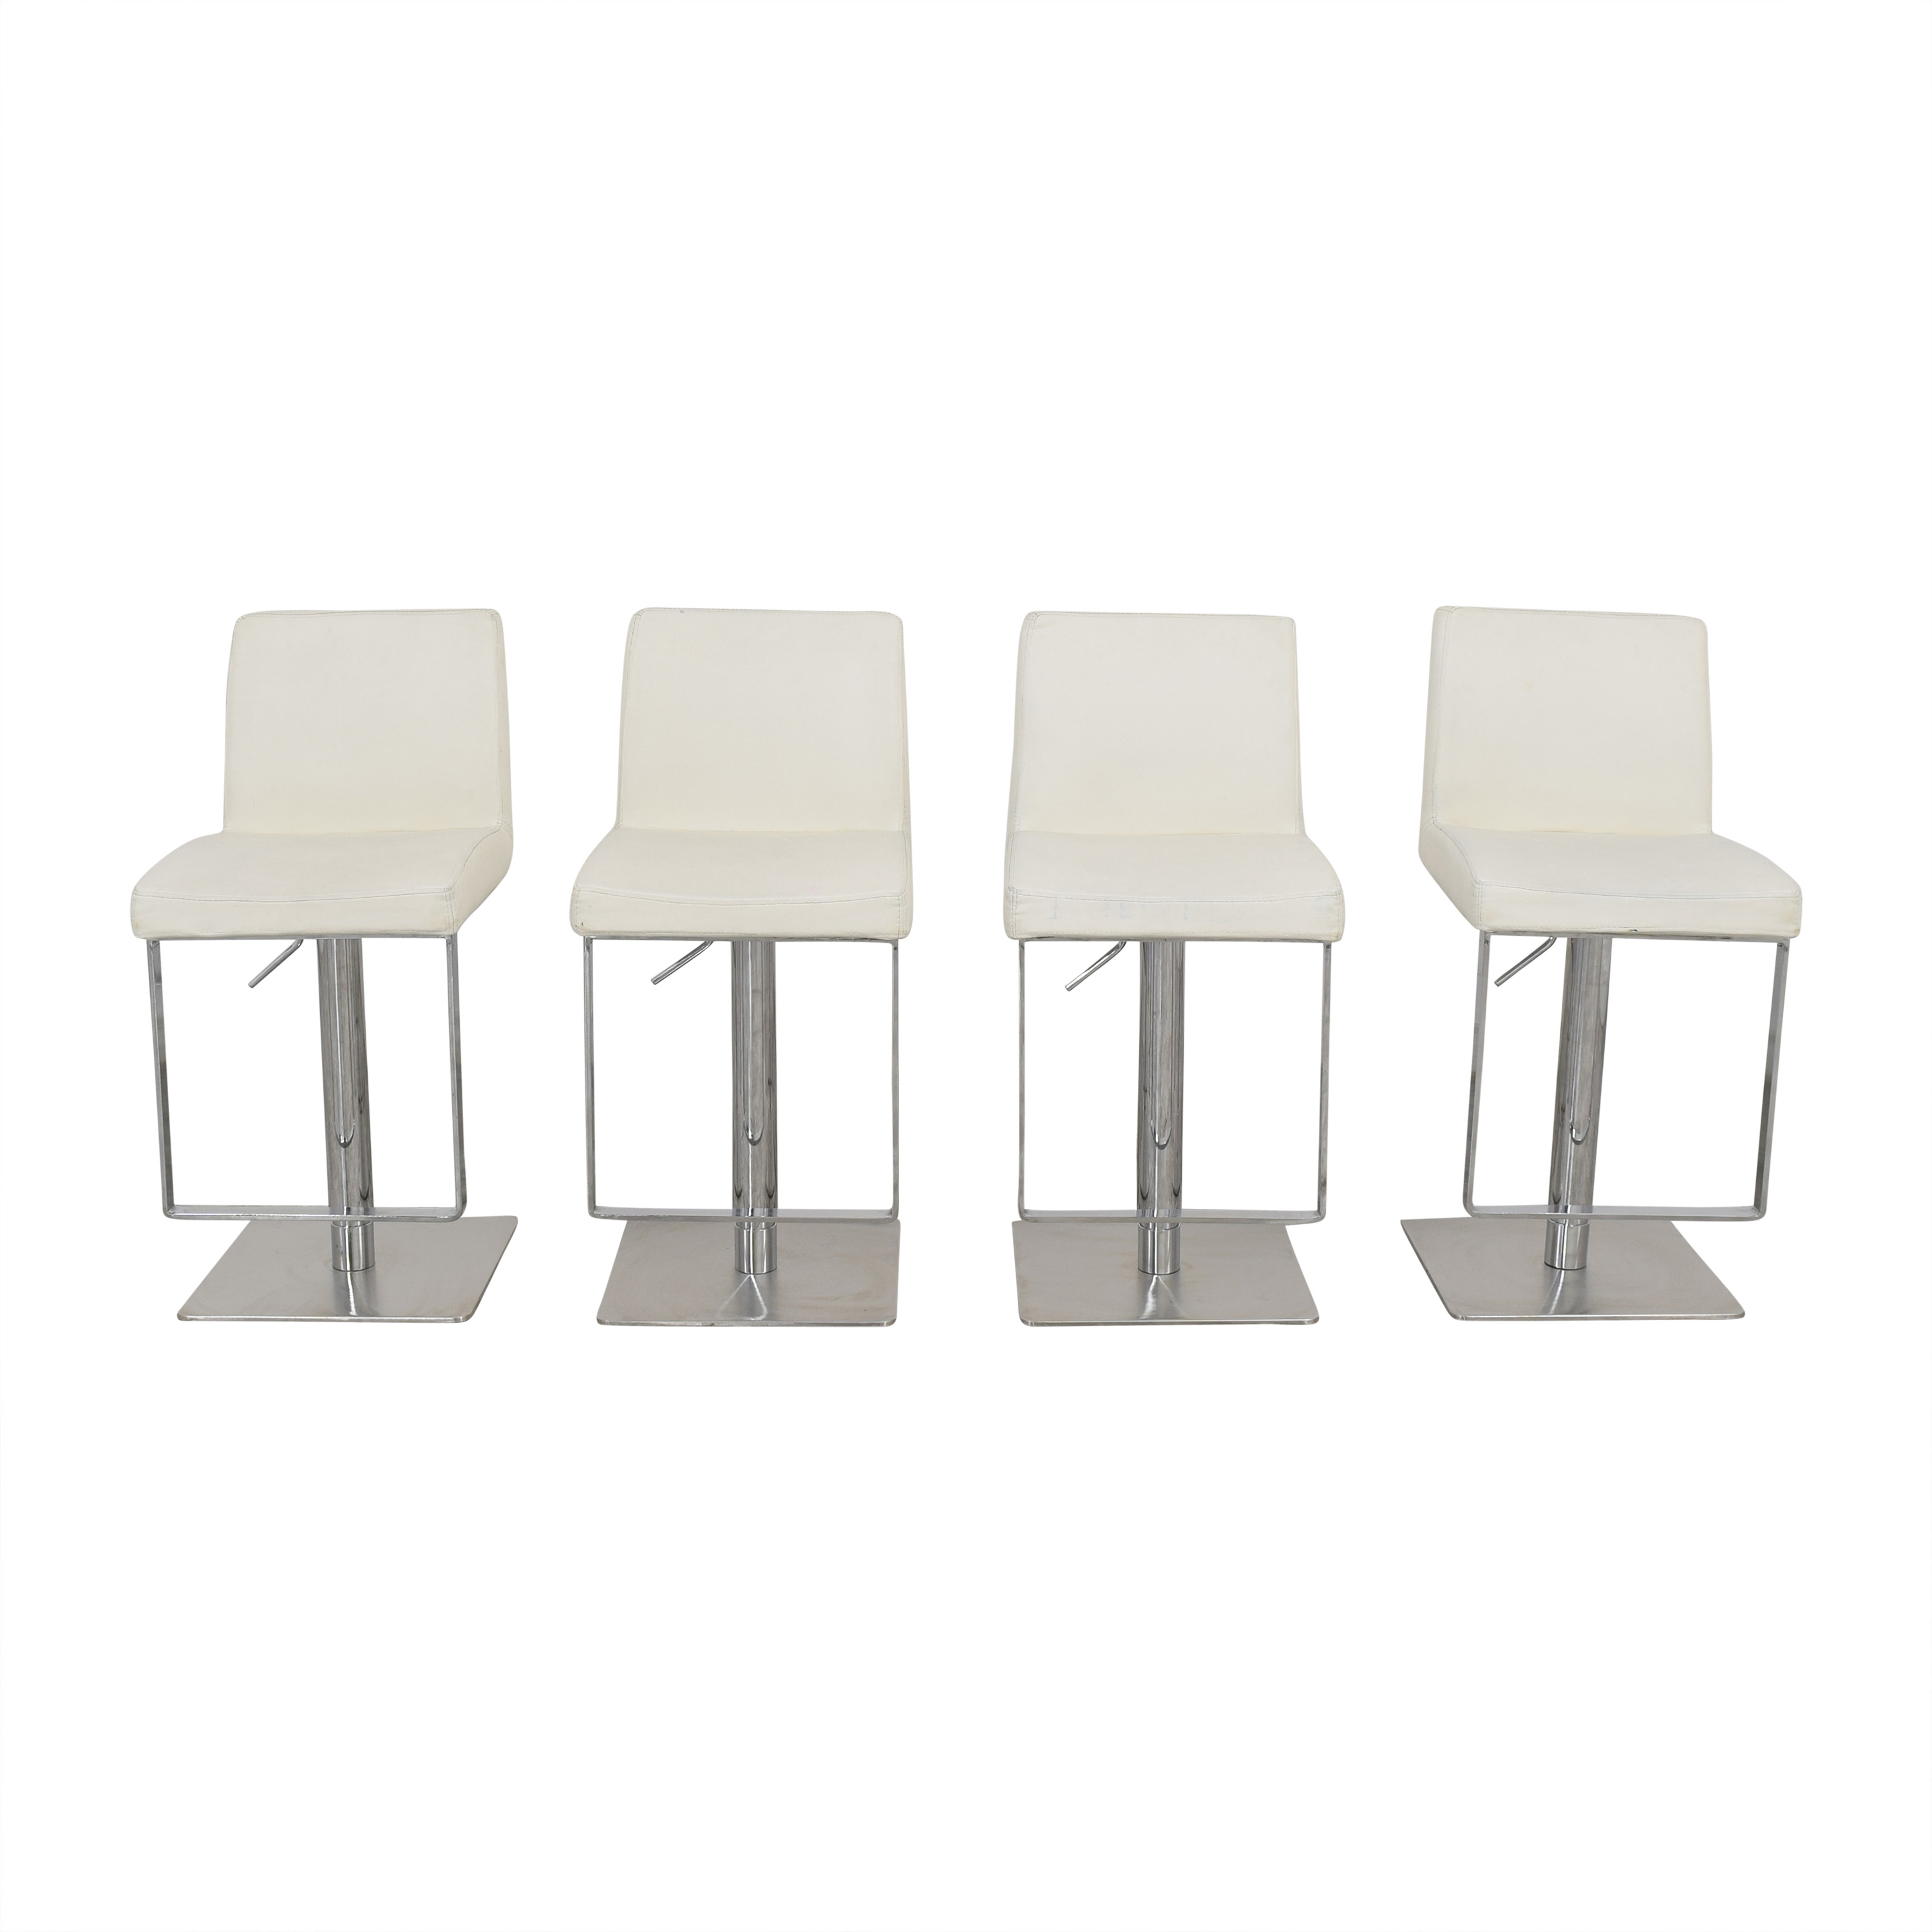 60 Off Chintaly Imports Chintaly Imports Adjustable Swivel Bar Stools Chairs